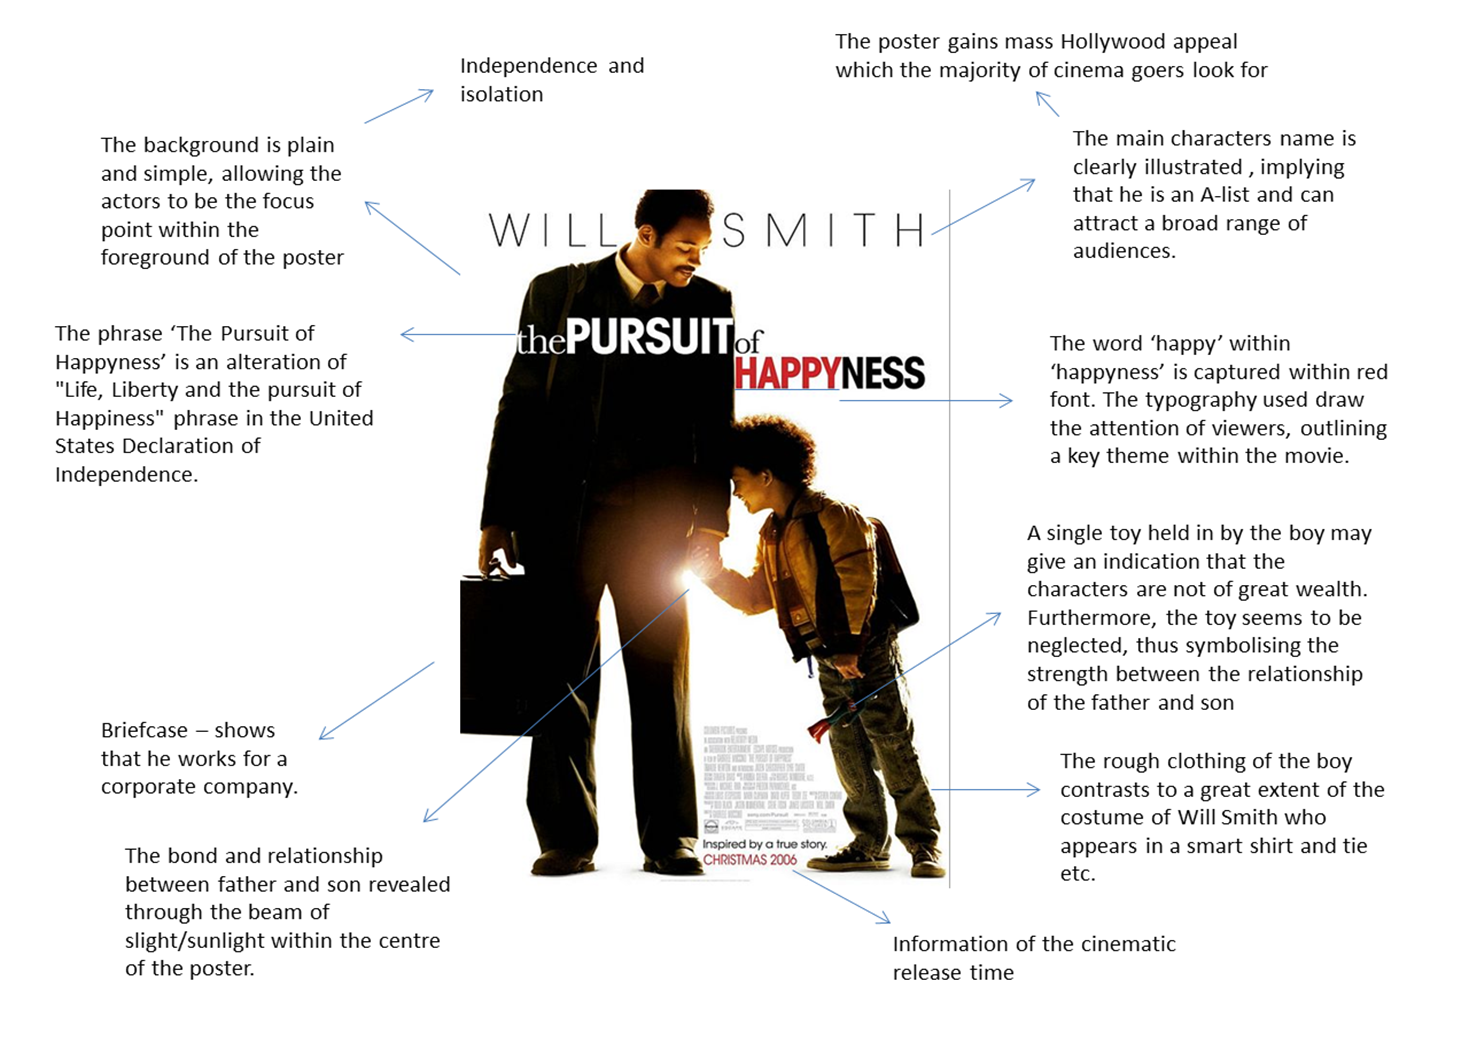 pursuit of happiness movie review ppt get a custom high quality pursuit of happiness movie review ppt get a custom high quality essay here